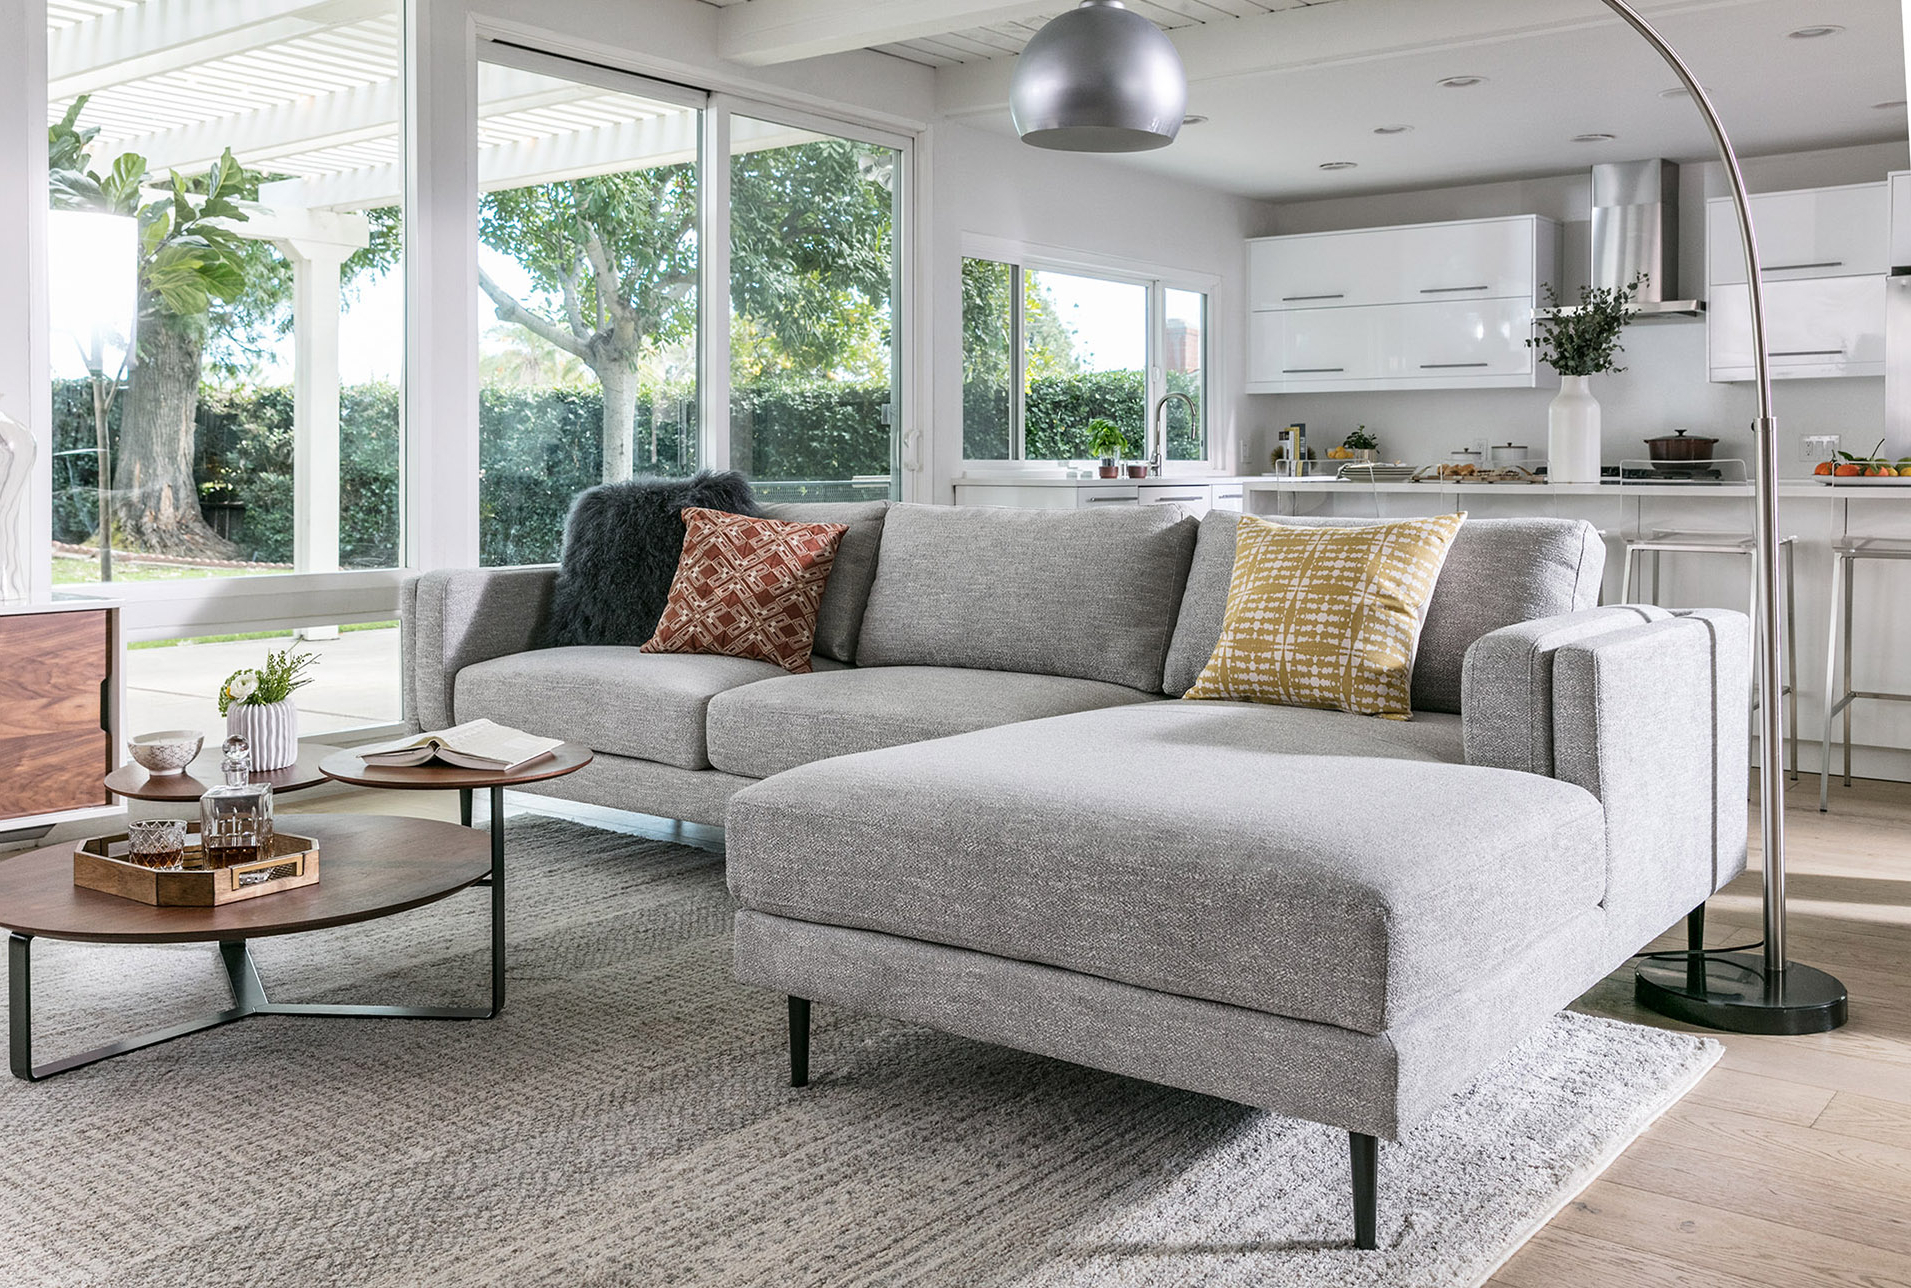 Products Intended For Well Known Aquarius Light Grey 2 Piece Sectionals With Raf Chaise (Gallery 9 of 20)